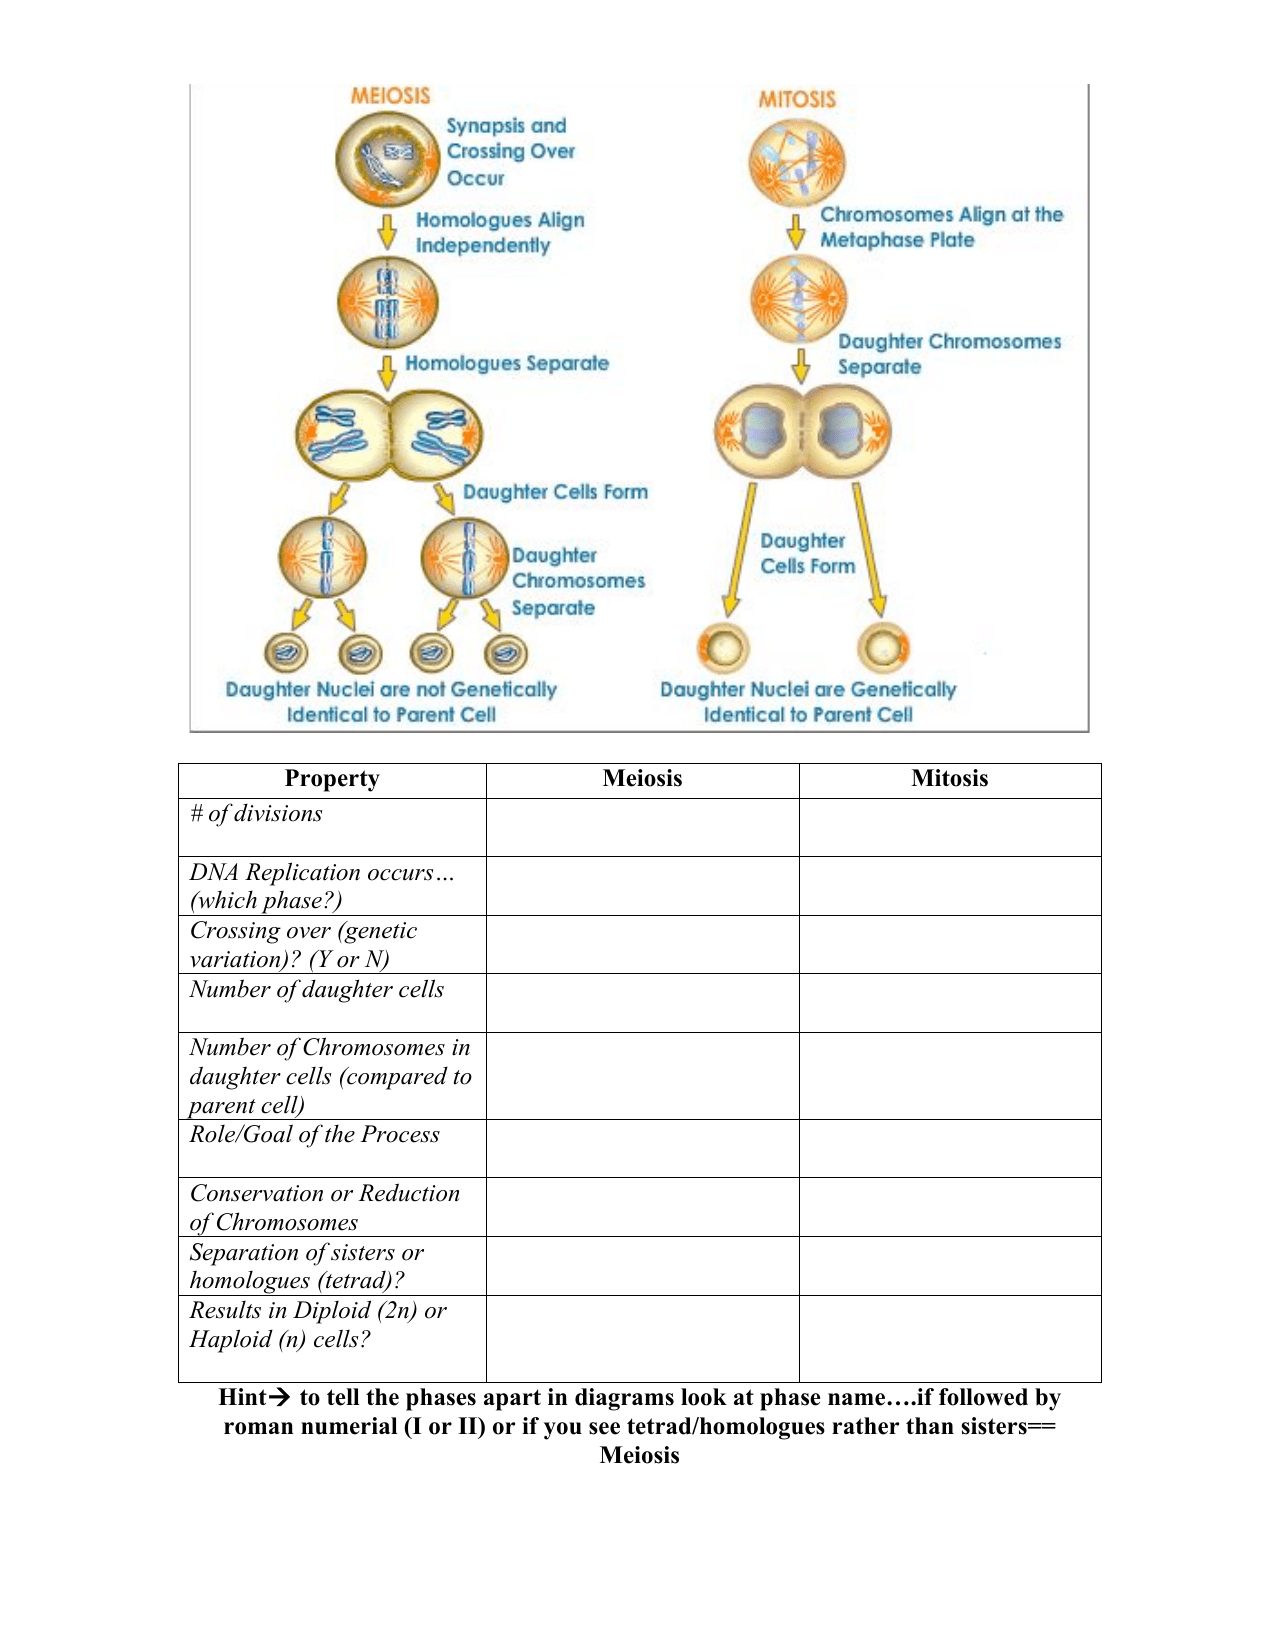 Mitosis Meiosis Comparison